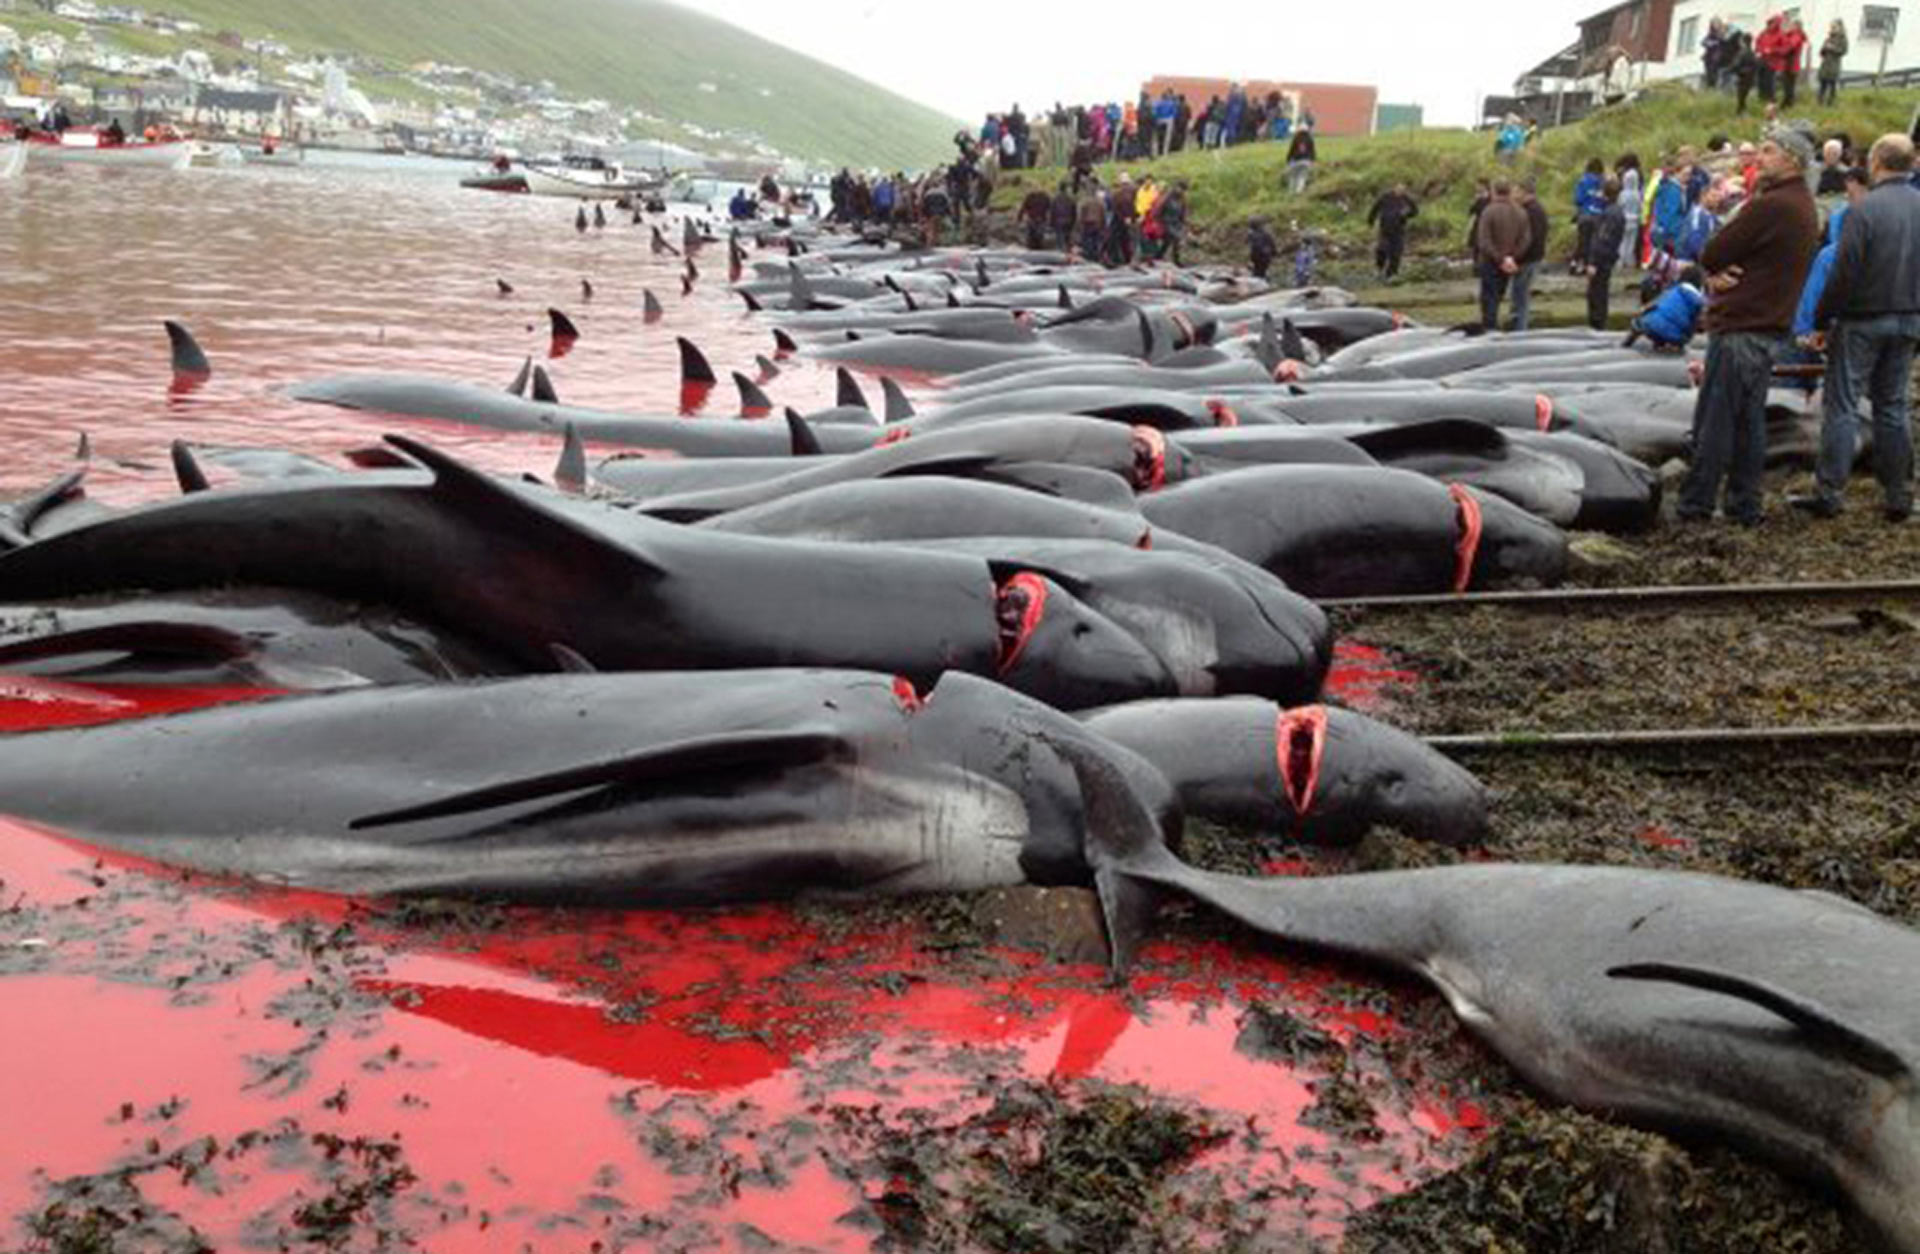 196 hunted pilot whales. Photo was taken on August 8, 2012 Vagur. Source: www.portal.fo